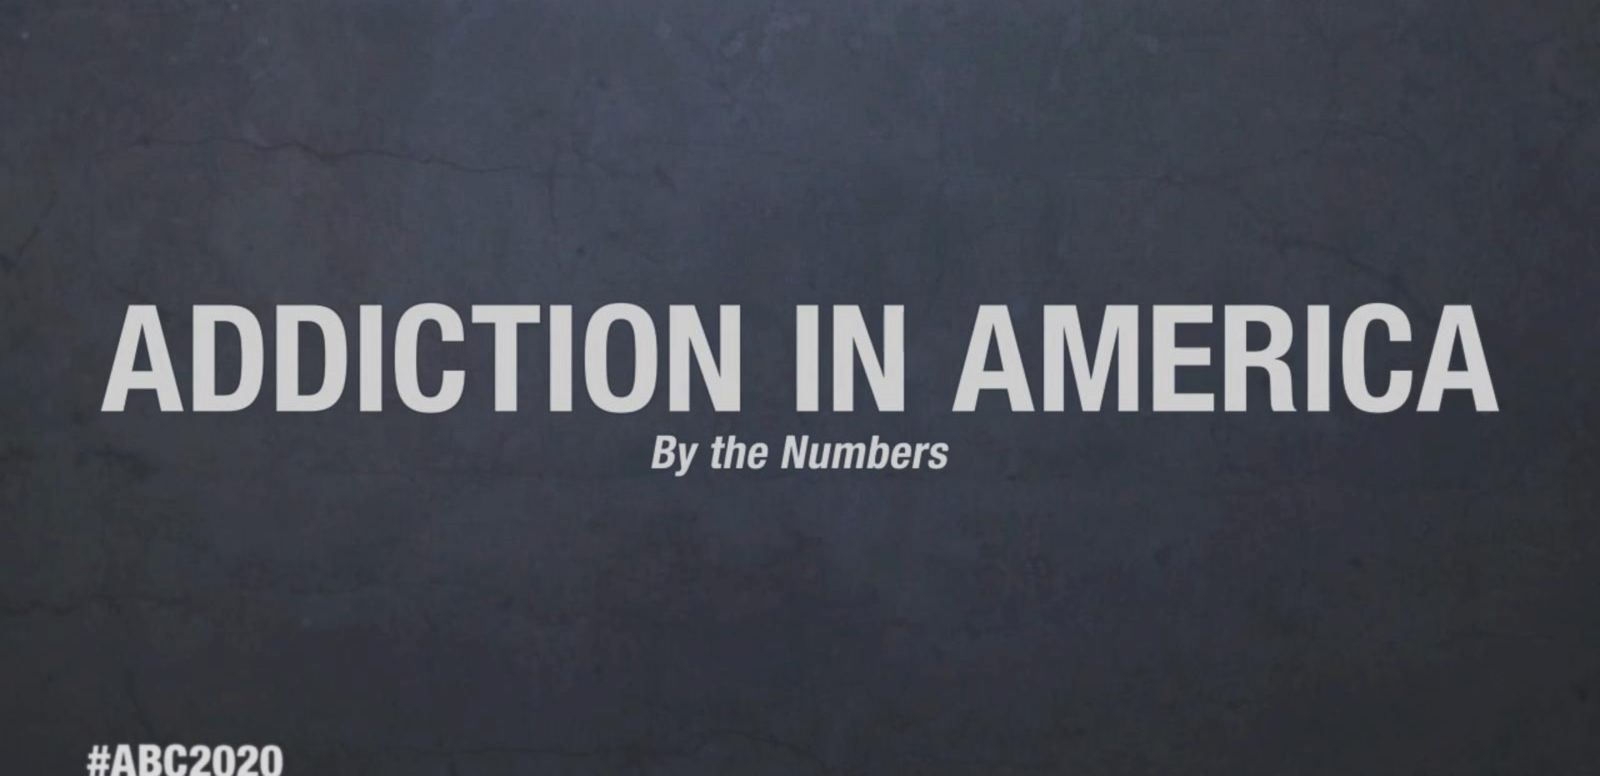 VIDEO: Addiction in America: By the Numbers